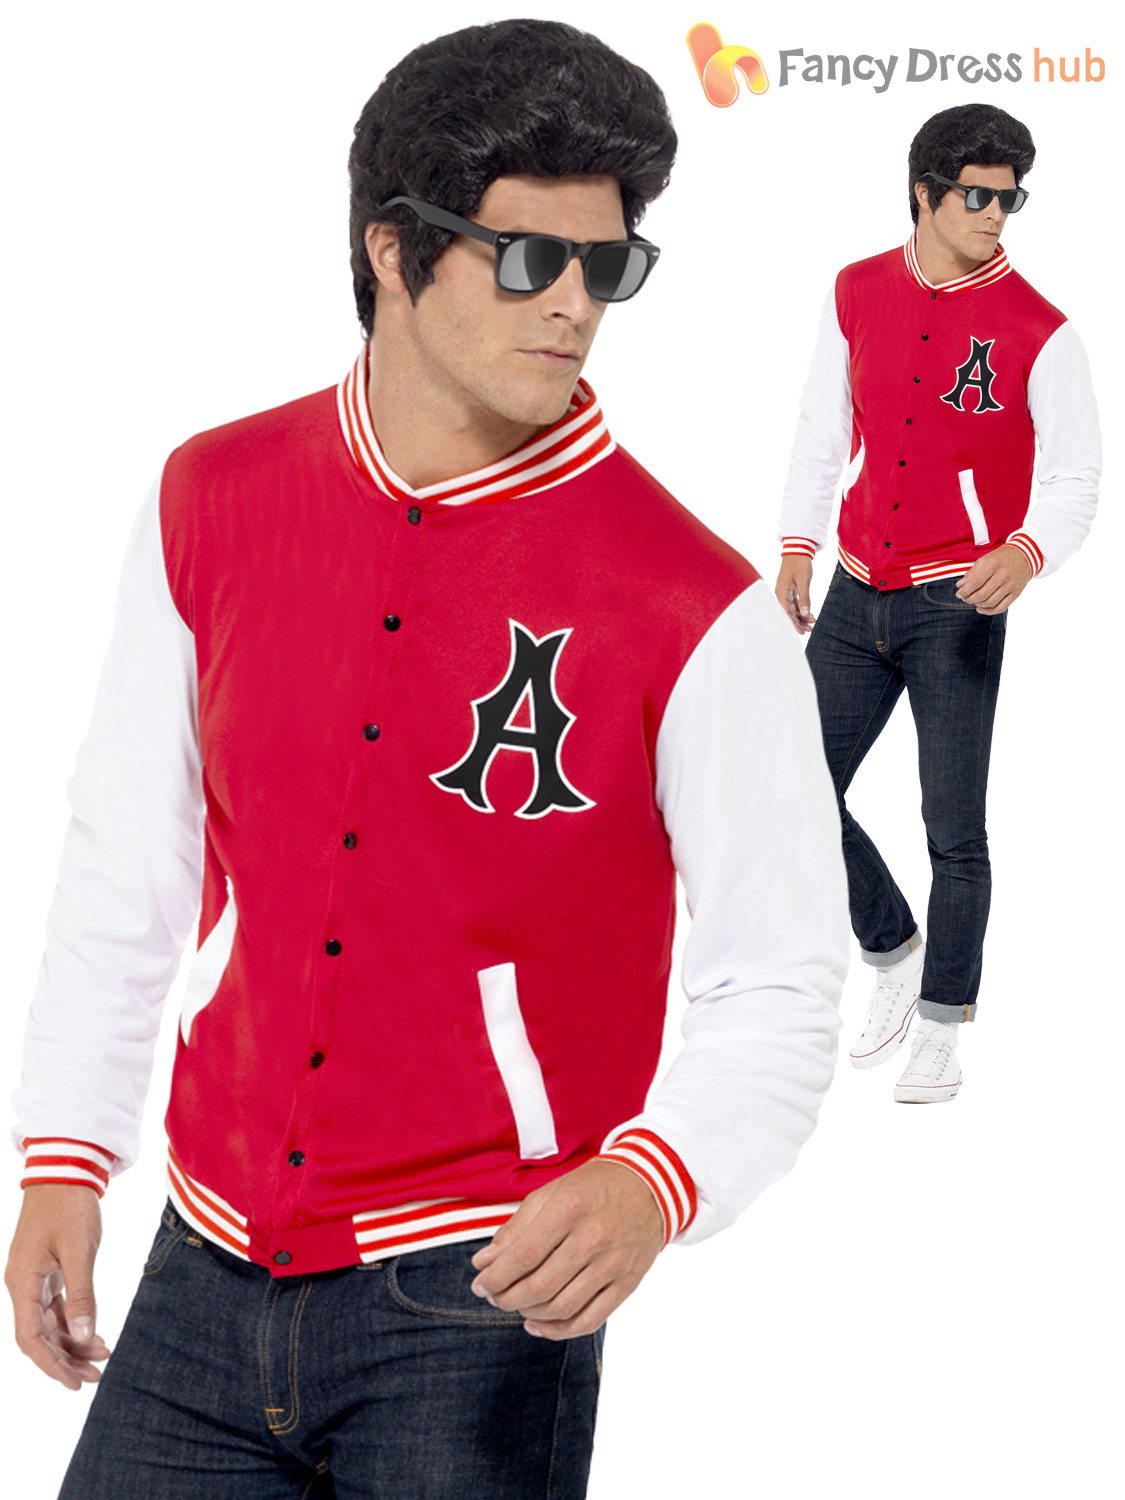 Details about Mens 50s 1950\u0027s Sports Jacket Letterman Rydell High School  Fancy Dress Costume